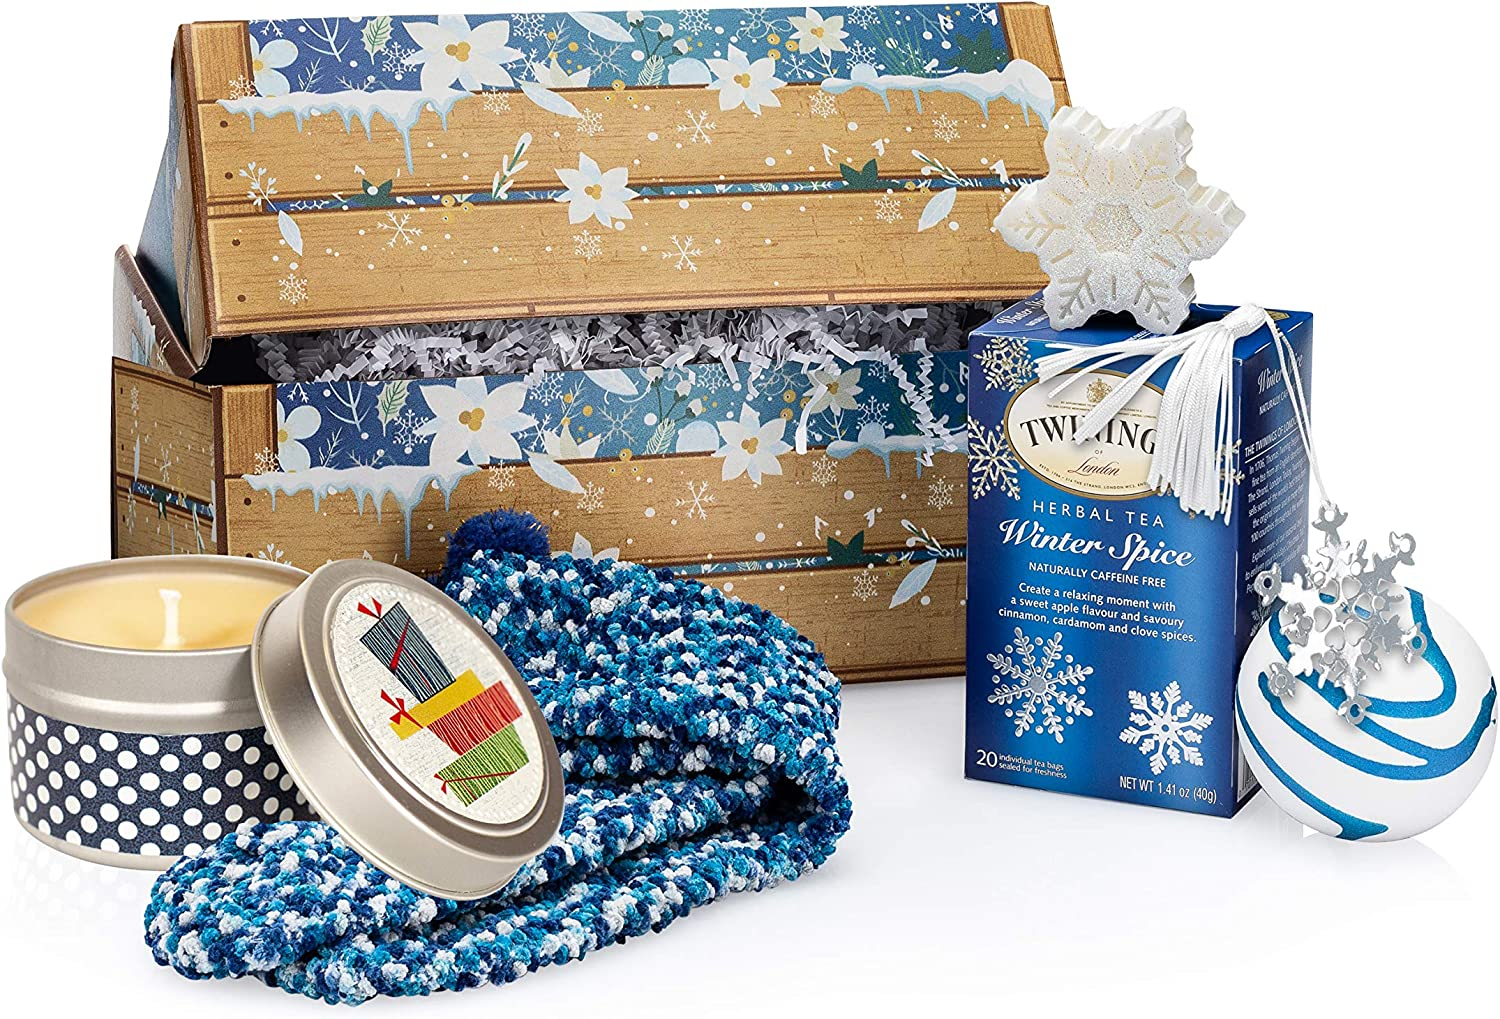 Gift Crates for Women: She'll Adore This As A Winter Gift Basket, Baskets, Birthday Care Packages for Women, Female Care Package, Thank You Gift Box Or Winter Care Package